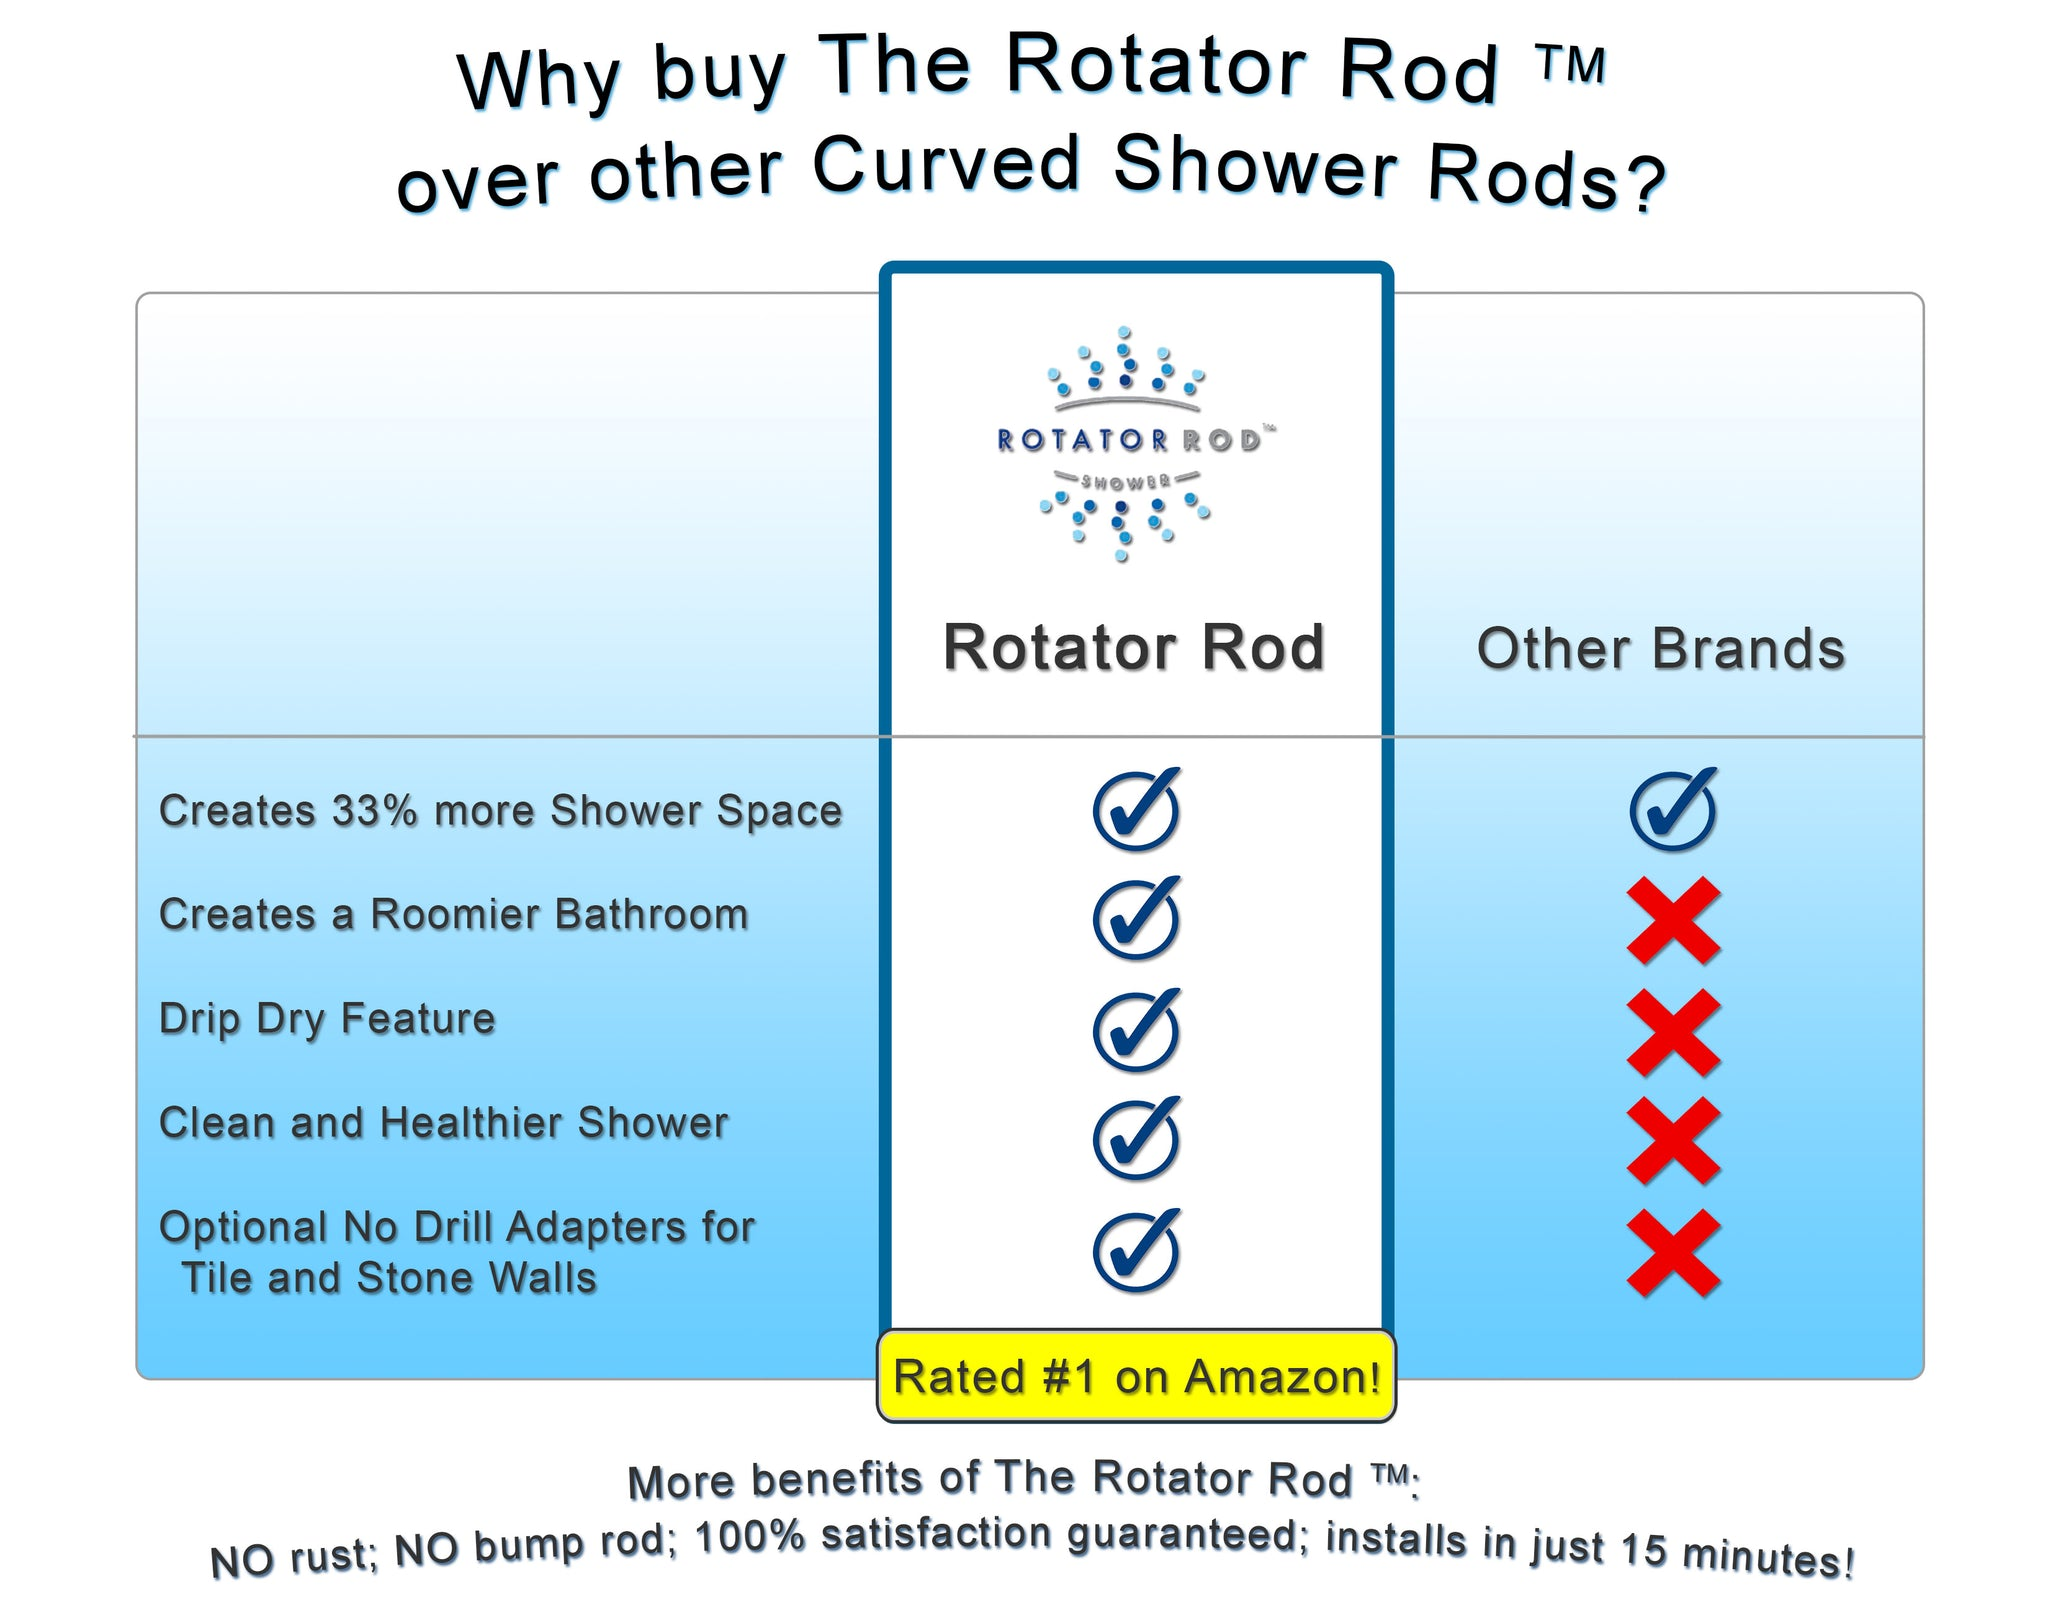 Curved shower rod brands compared to the Rotator Rod.  More shower space, expanded bathroom space, no drill adapters mount without holes in tile or stone, drip dry into the tub not on the floor